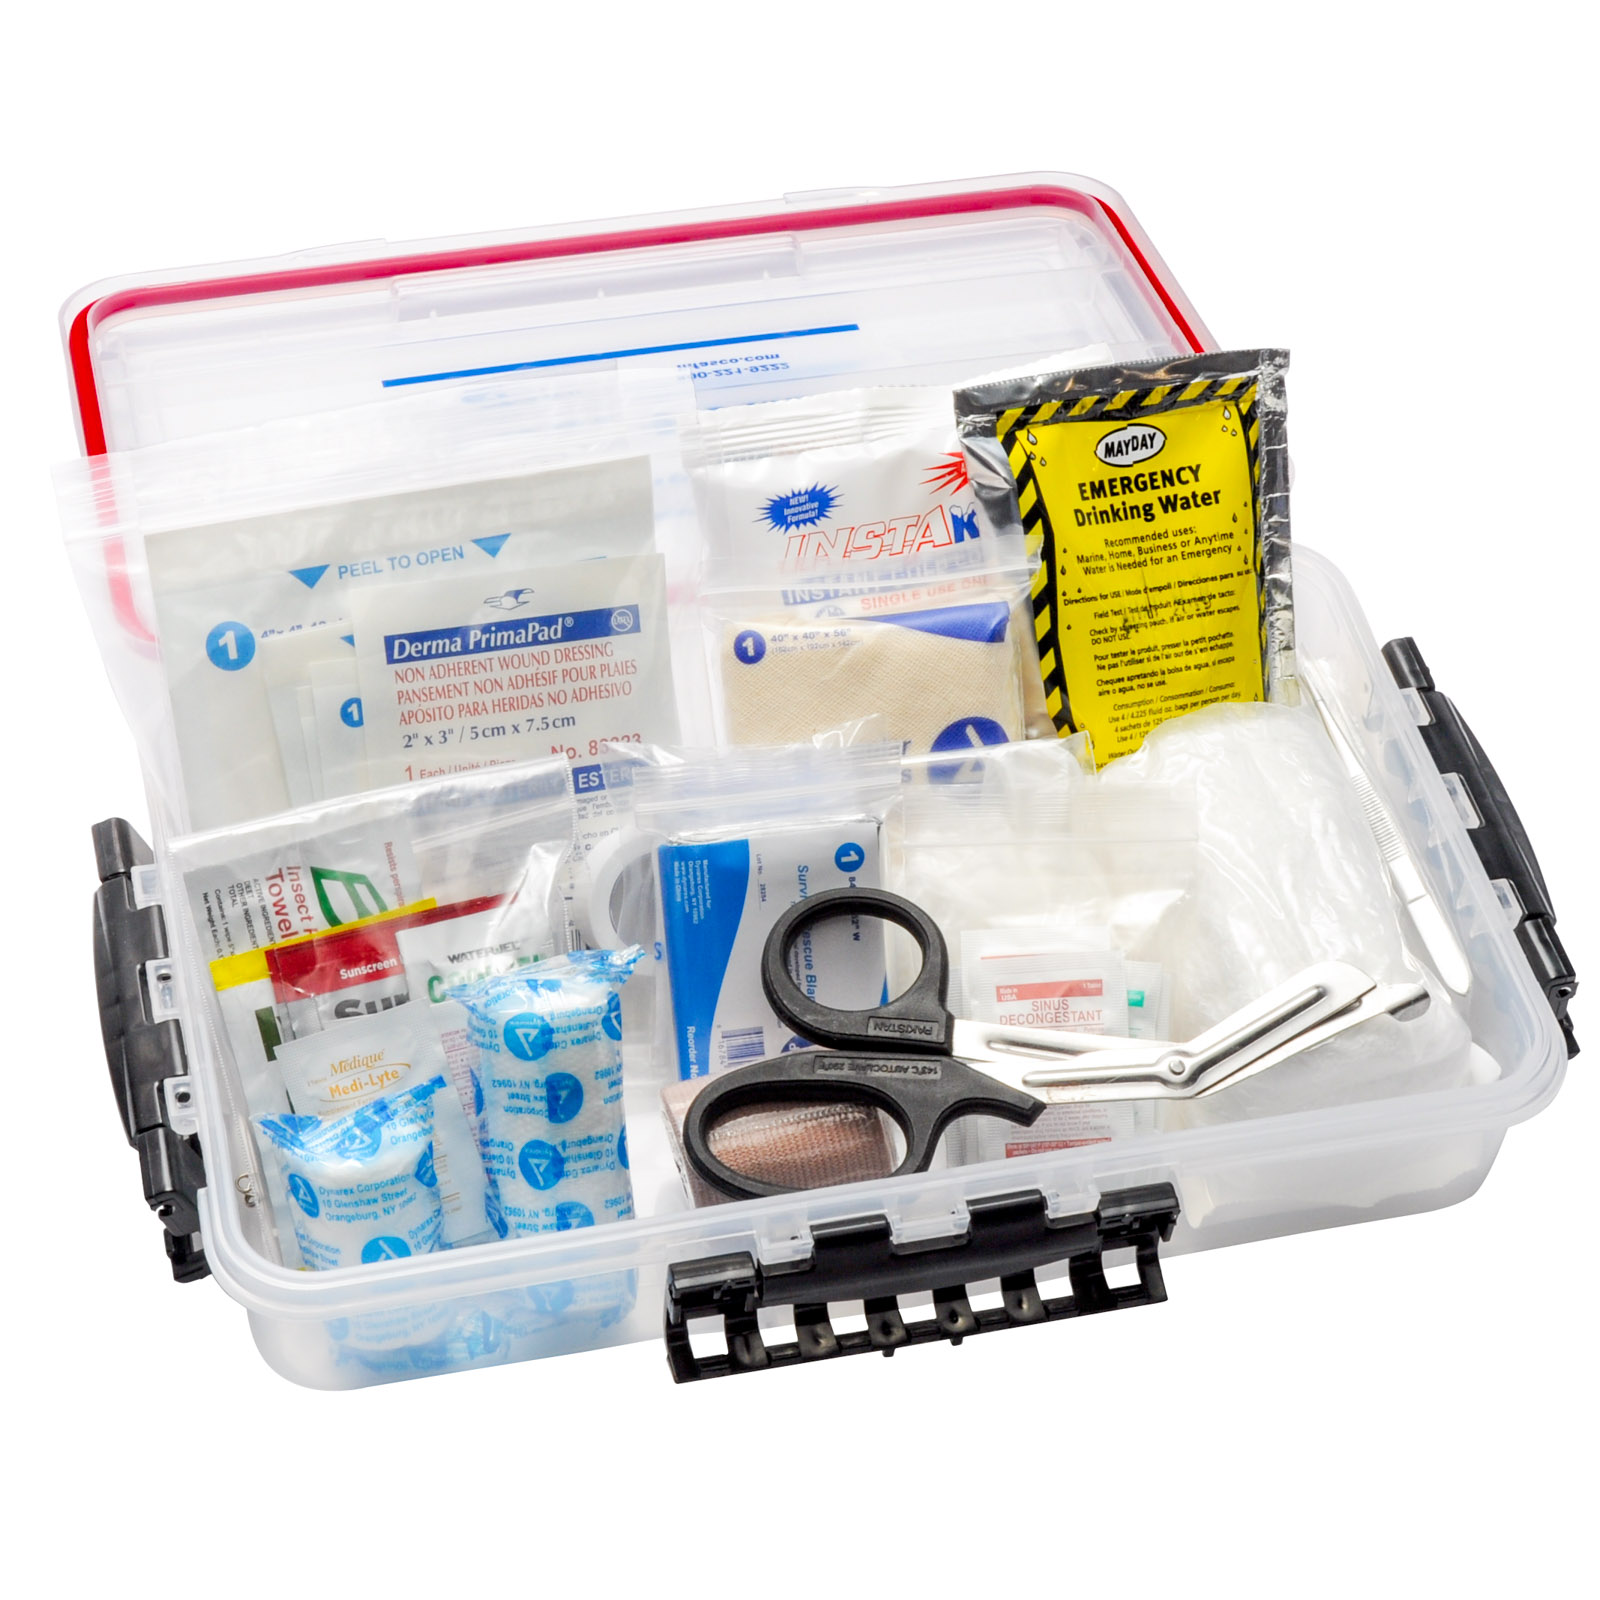 Marine First Aid Kit Small Waterproof Container